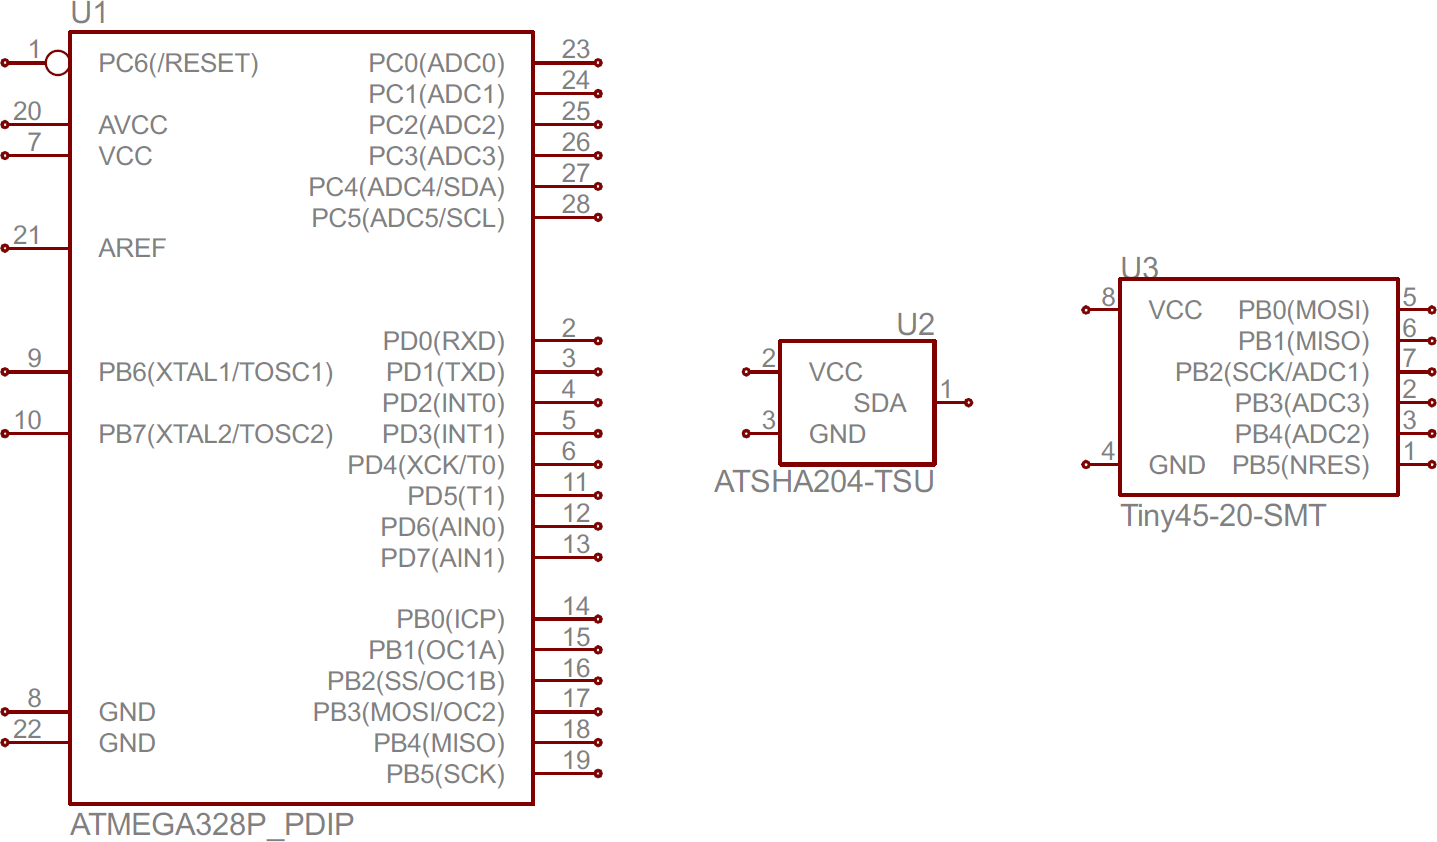 How to read a schematic learnsparkfun atmega328 atsha204 and attiny45 ic symbols schematic asfbconference2016 Choice Image